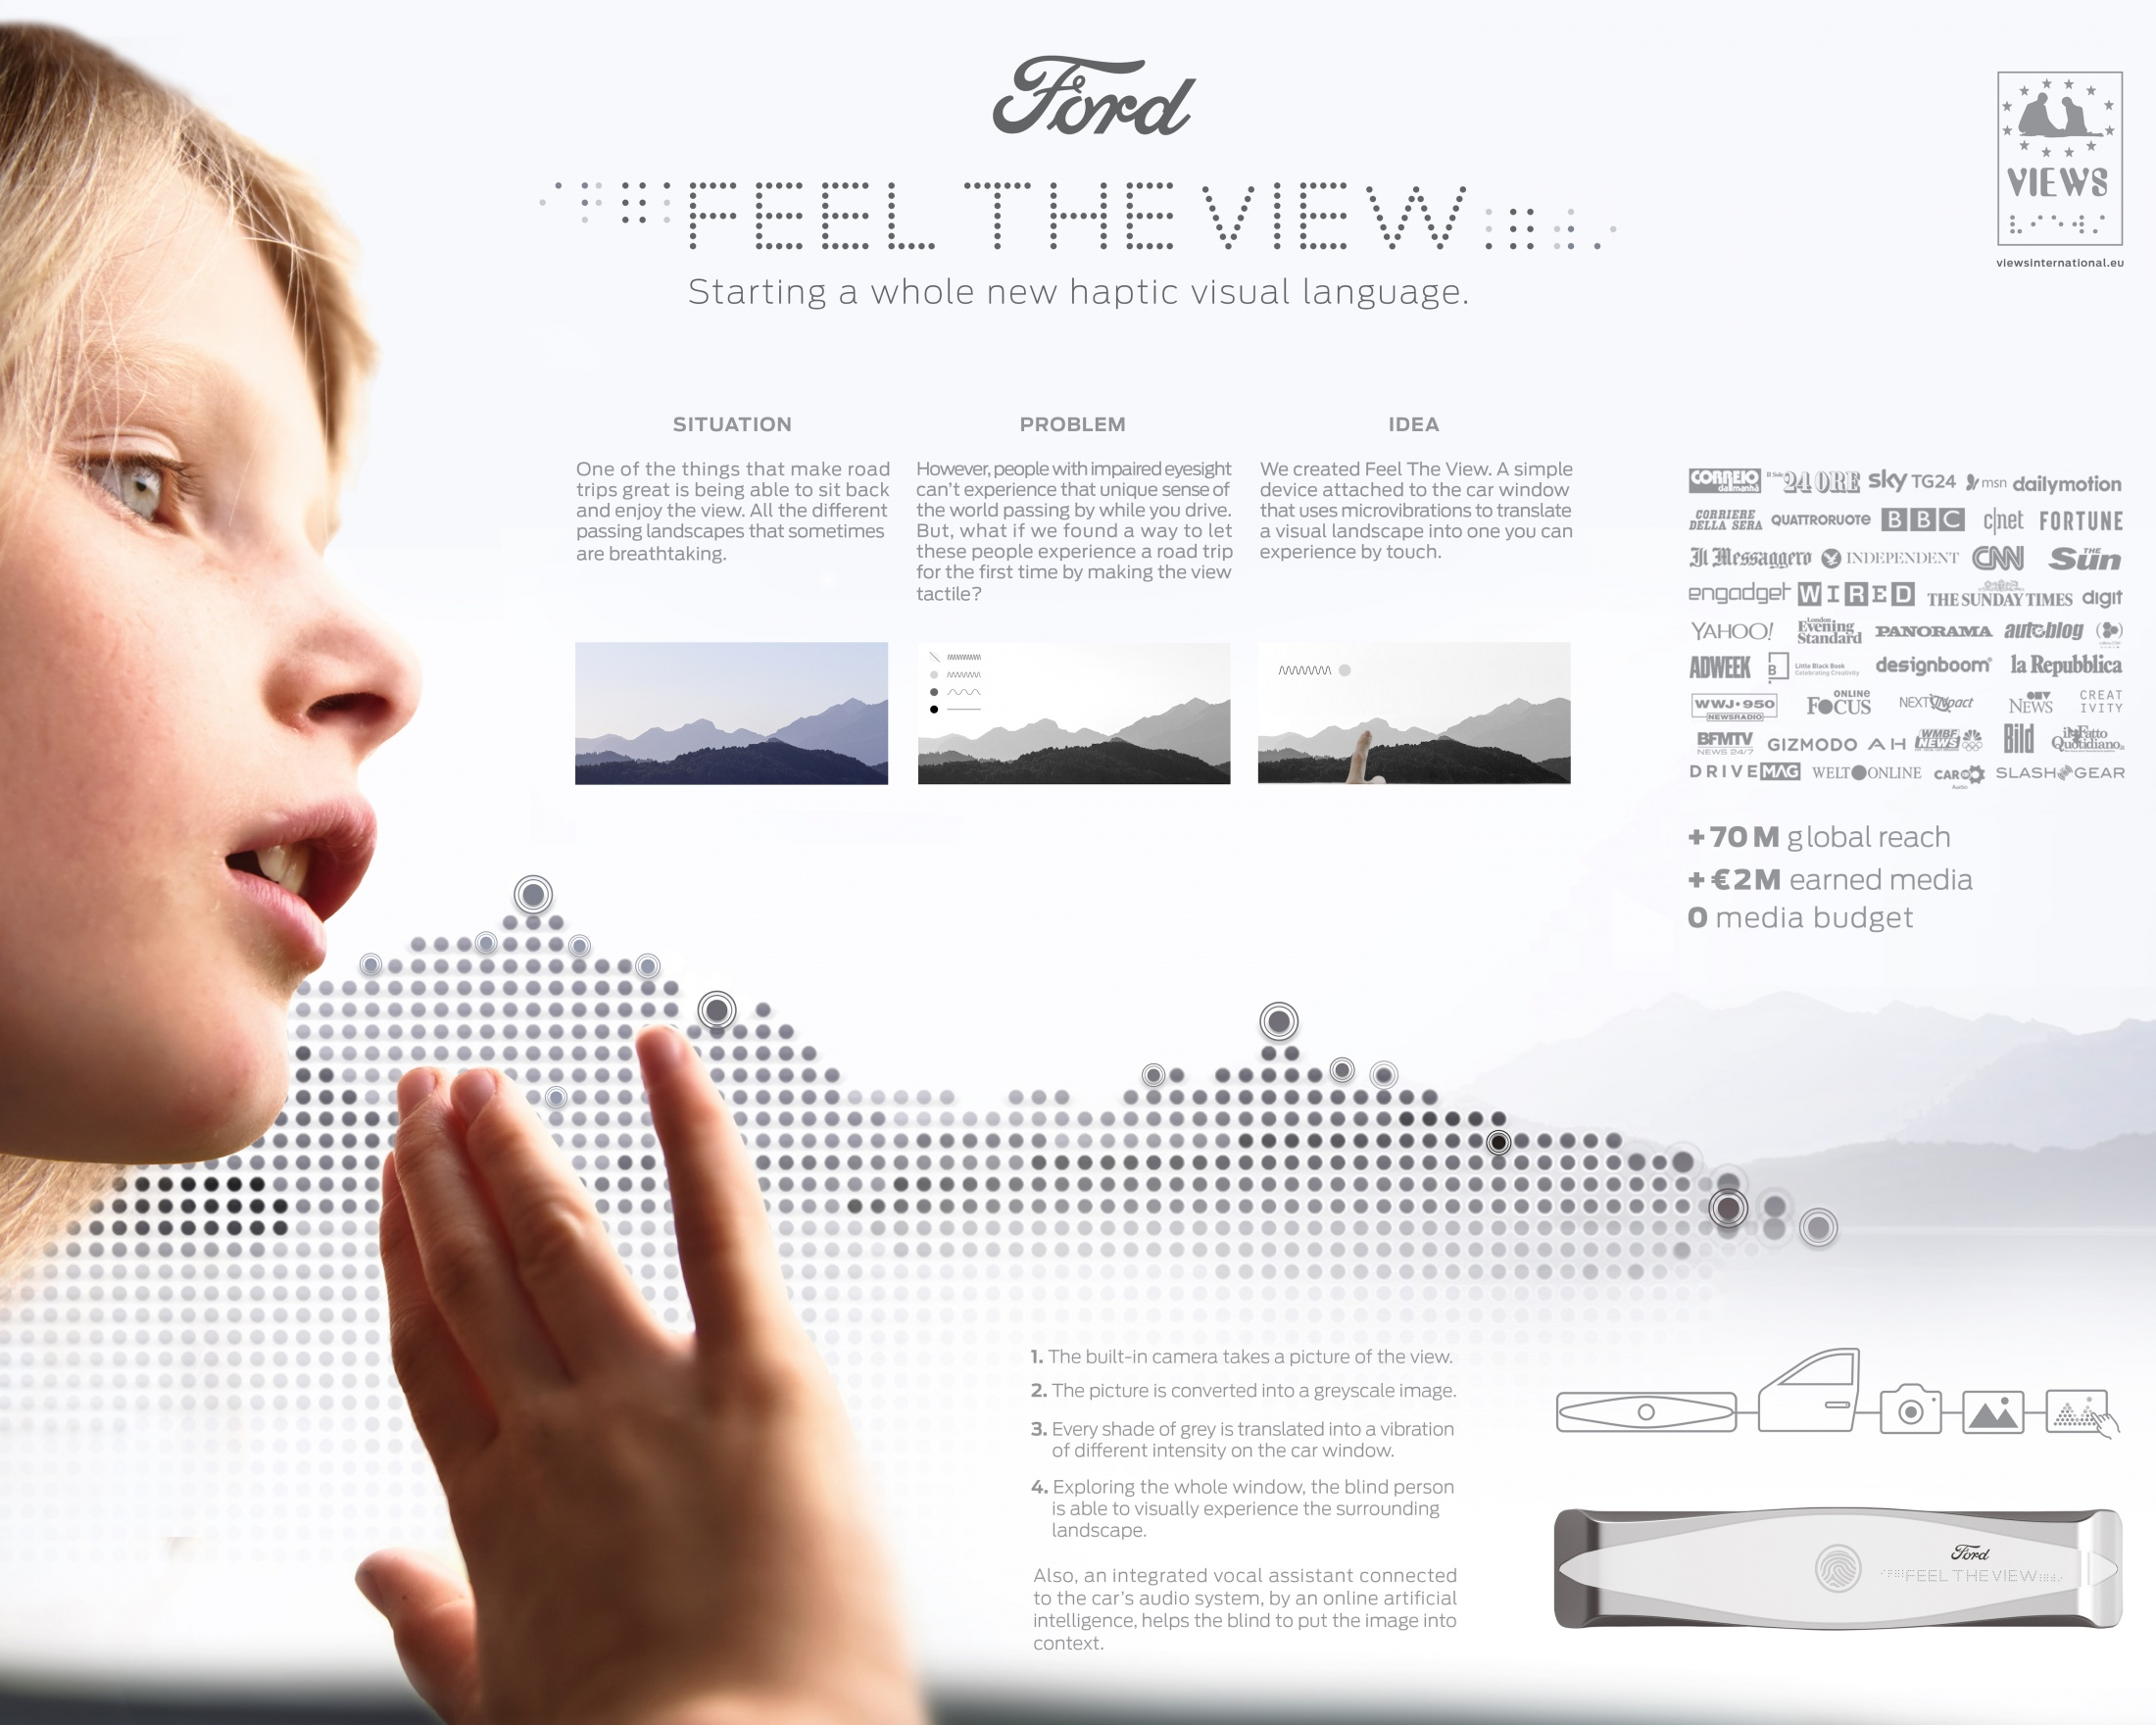 Image Media for Feel The View